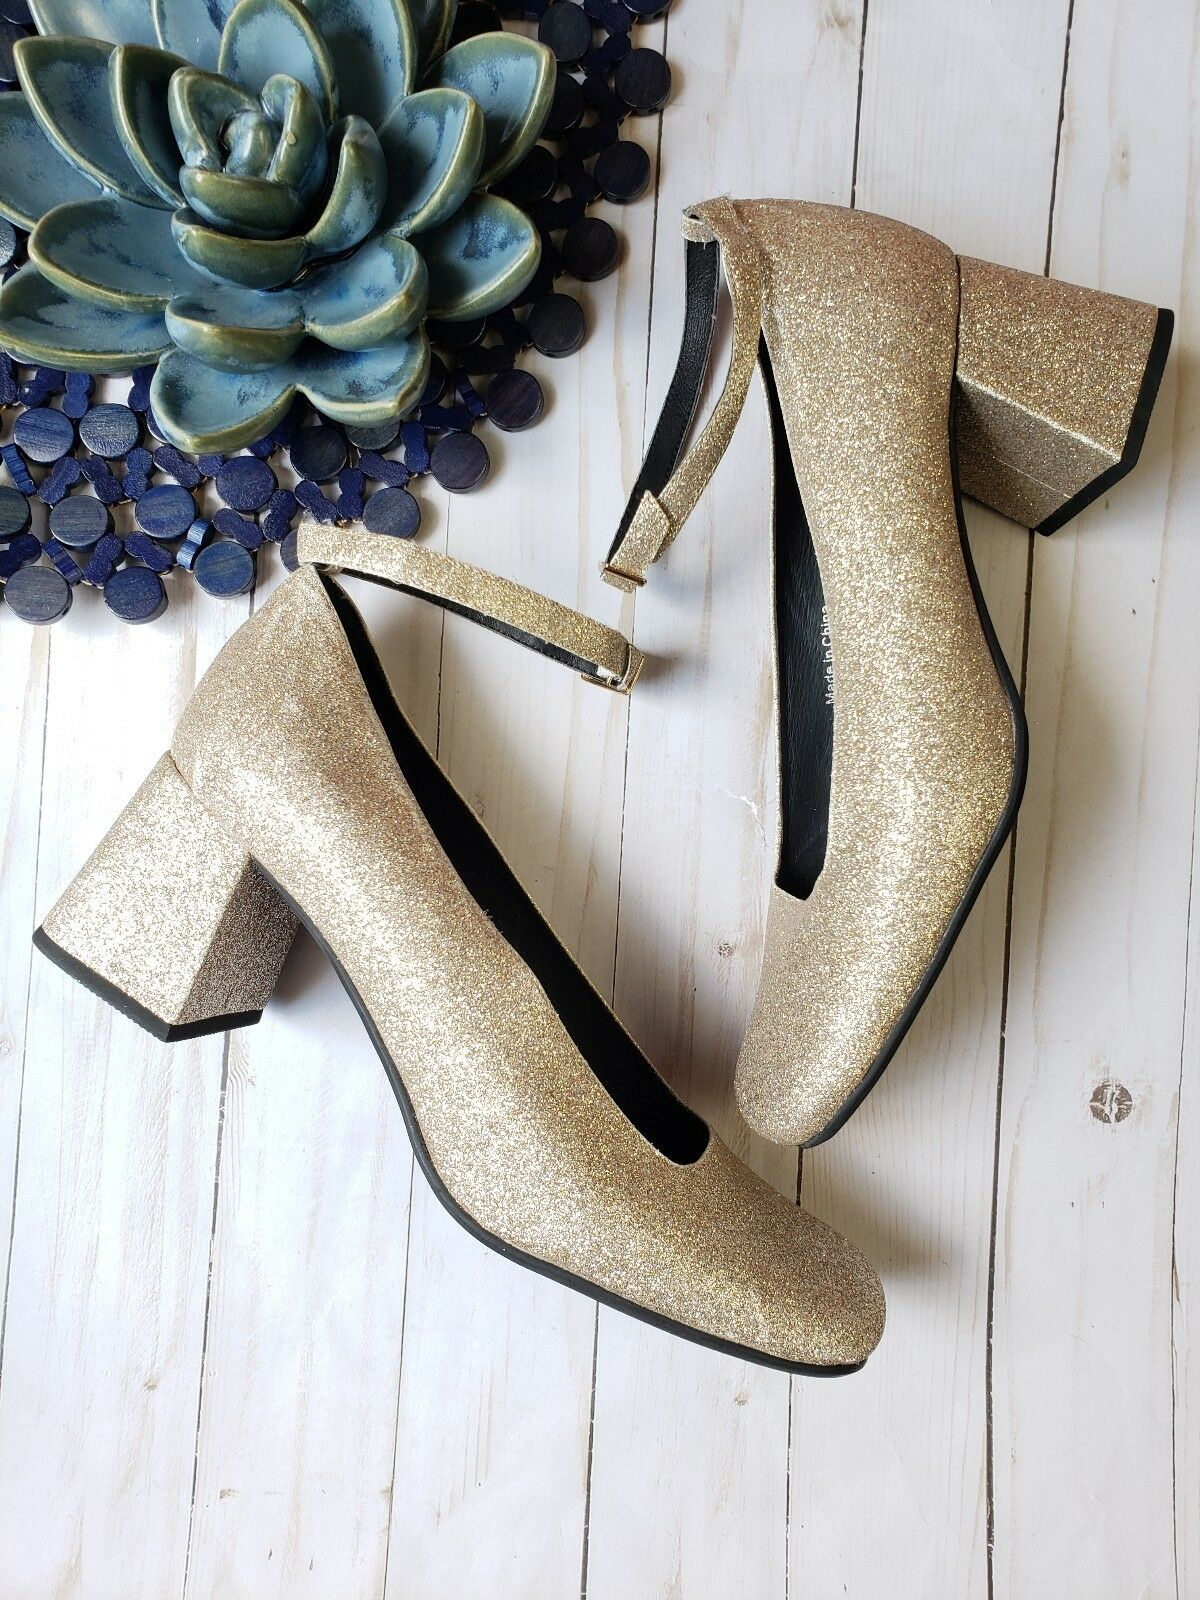 New JEFFREY CAMPBELL gold GLITTER ANKLE STRAP CHUNKY HEELS SIZE 10 NWOB